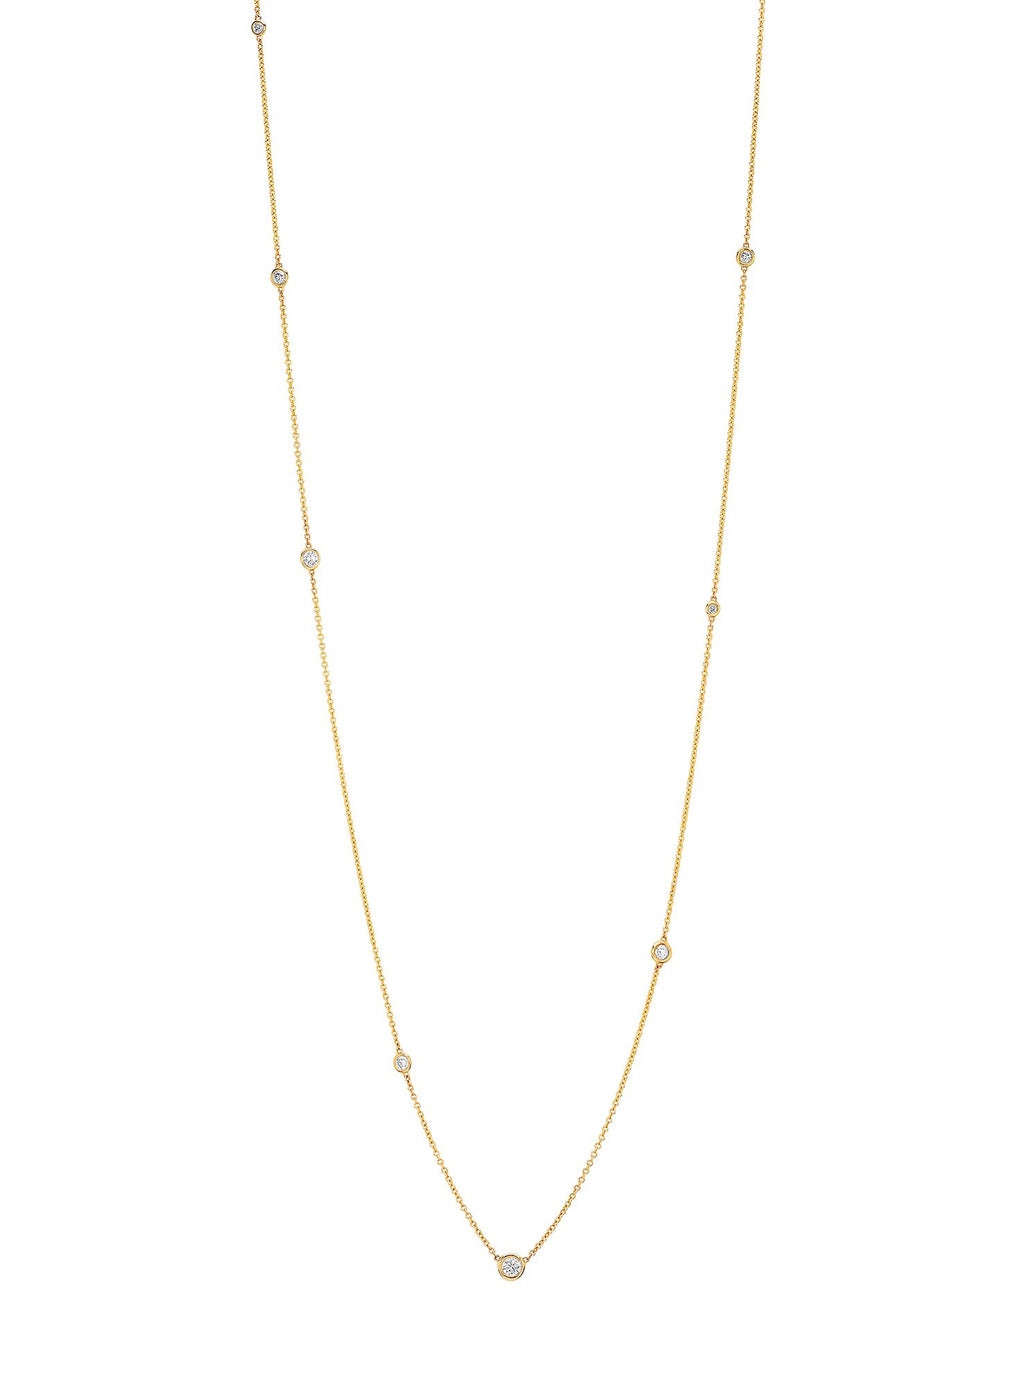 Diamond Orbit Bezel Long Strand Necklace Yellow Gold